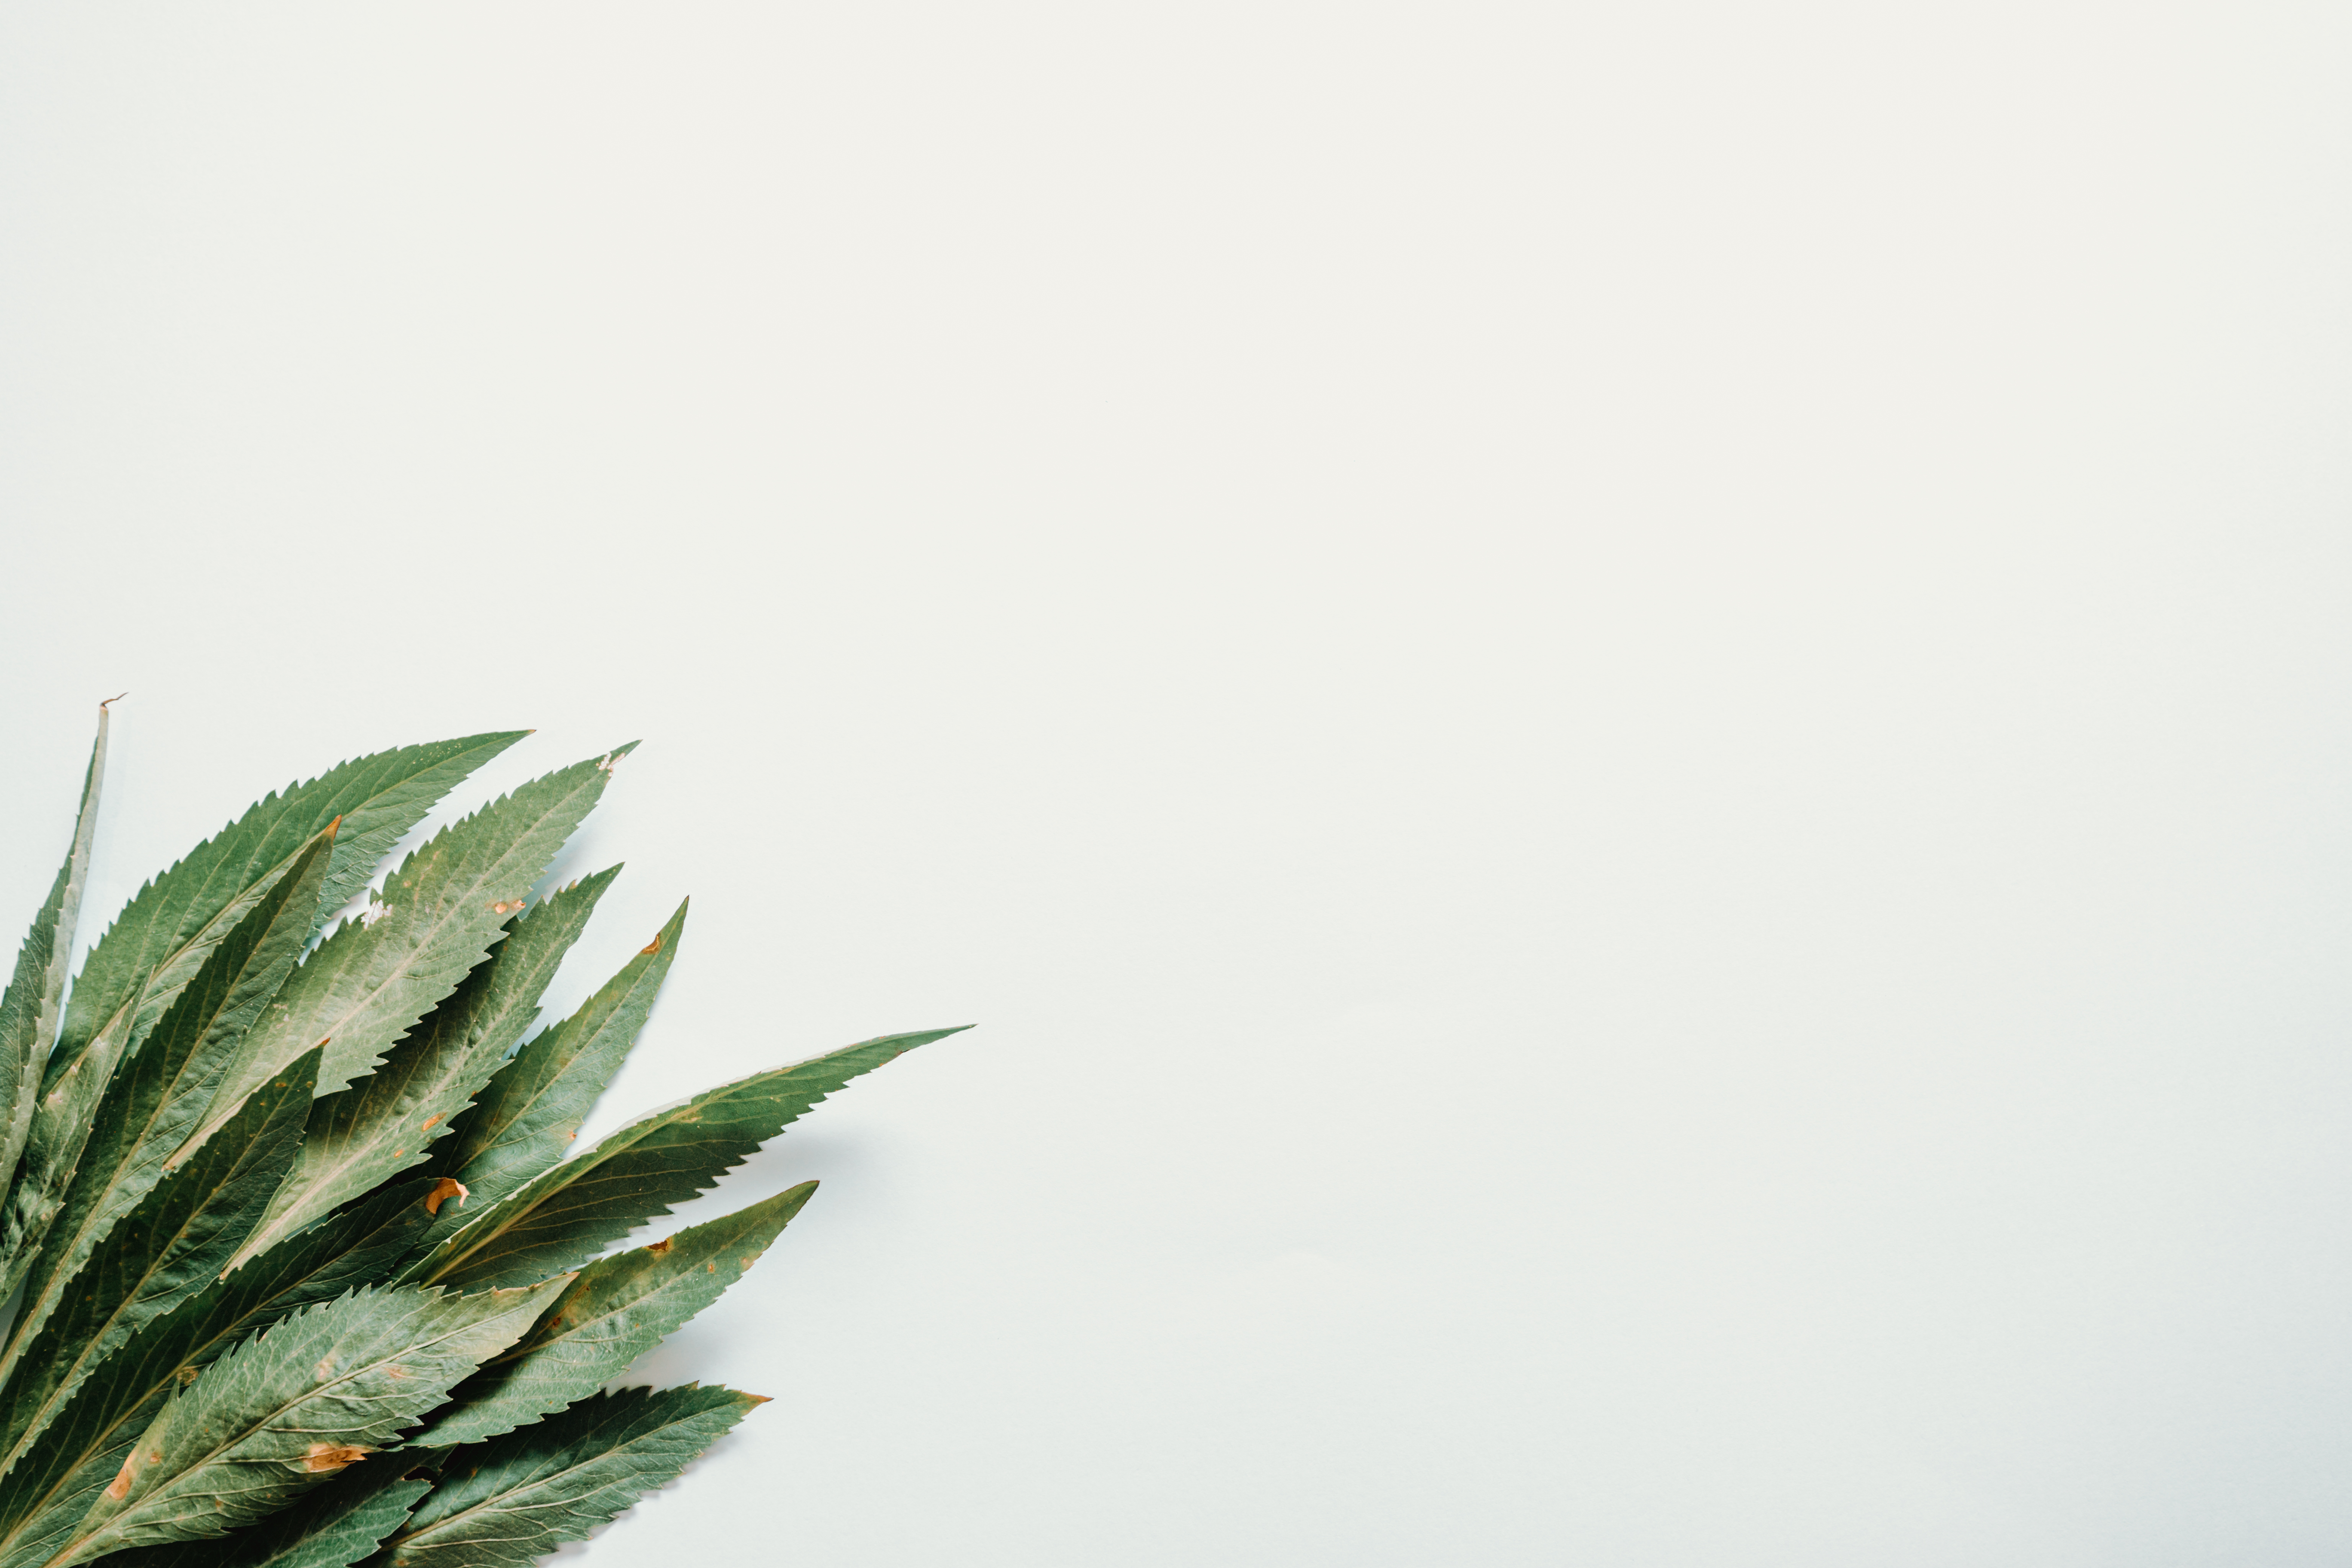 Long green leaves on white background